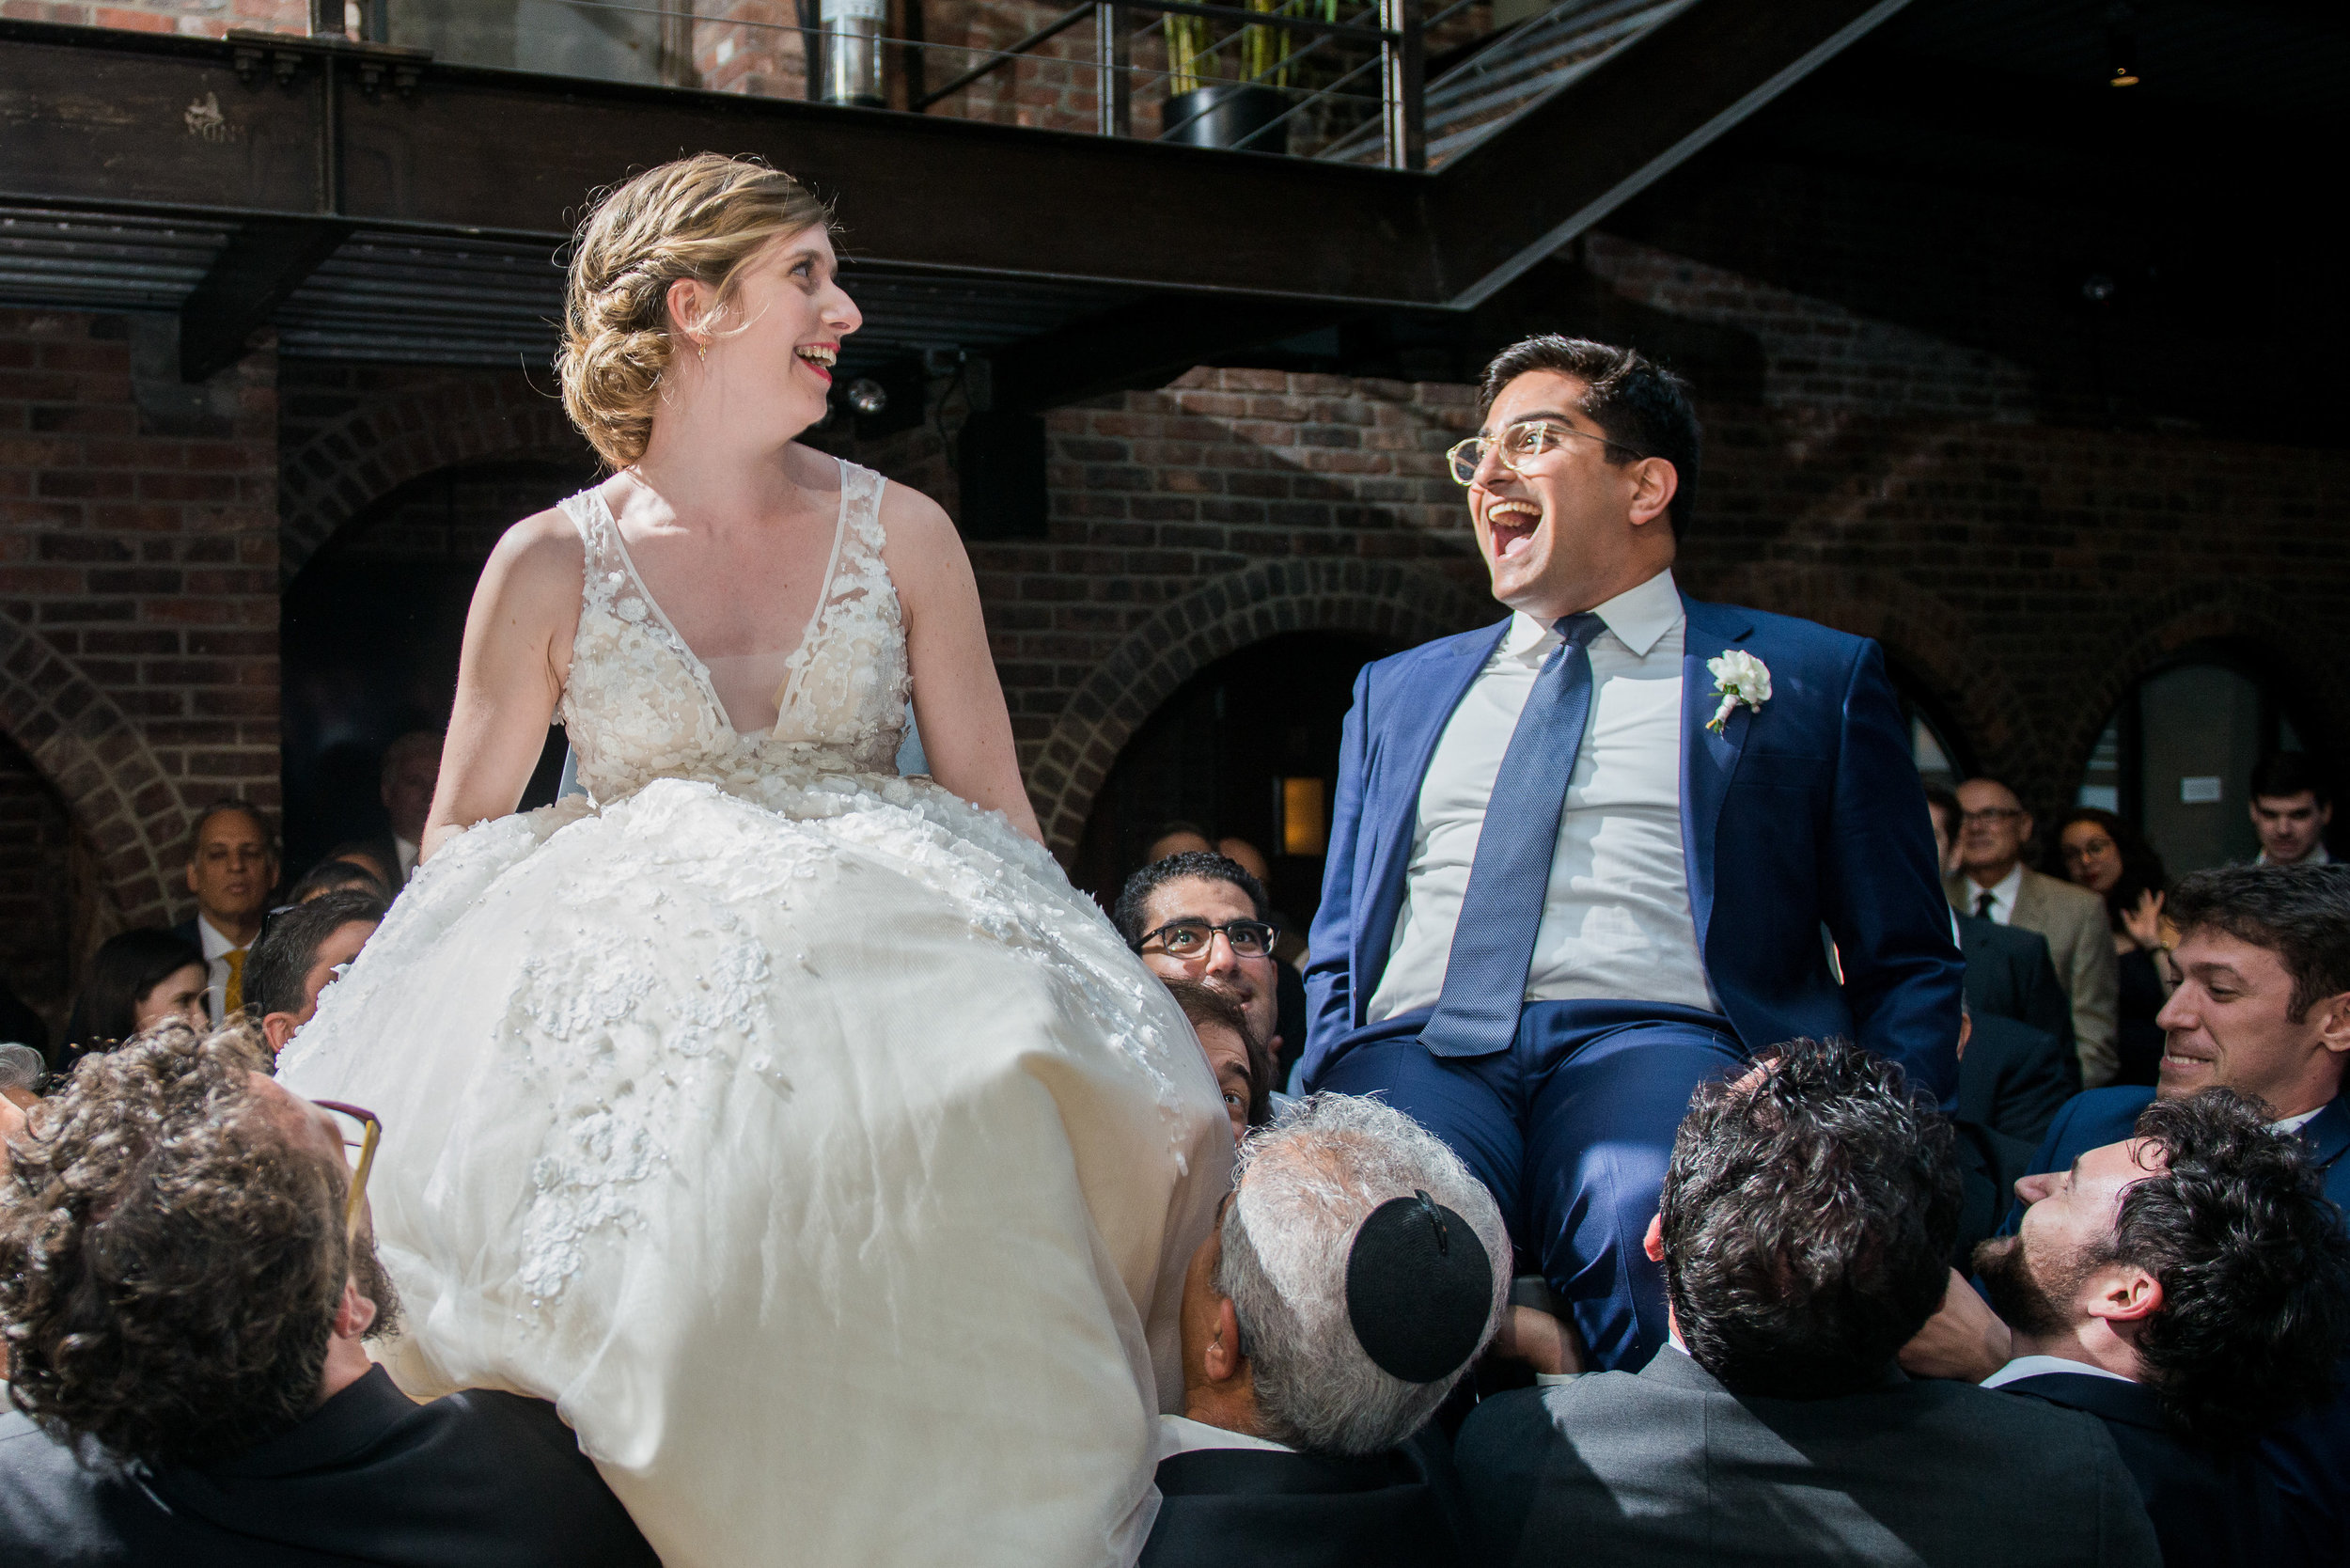 Tall & Small Events NYC, B+B, Modern Urban Industrial Jewish Outdoor Summer Wedding, New York City Real Wedding at The Foundry, LIC NY. Photo: Andrea Fischman Photography